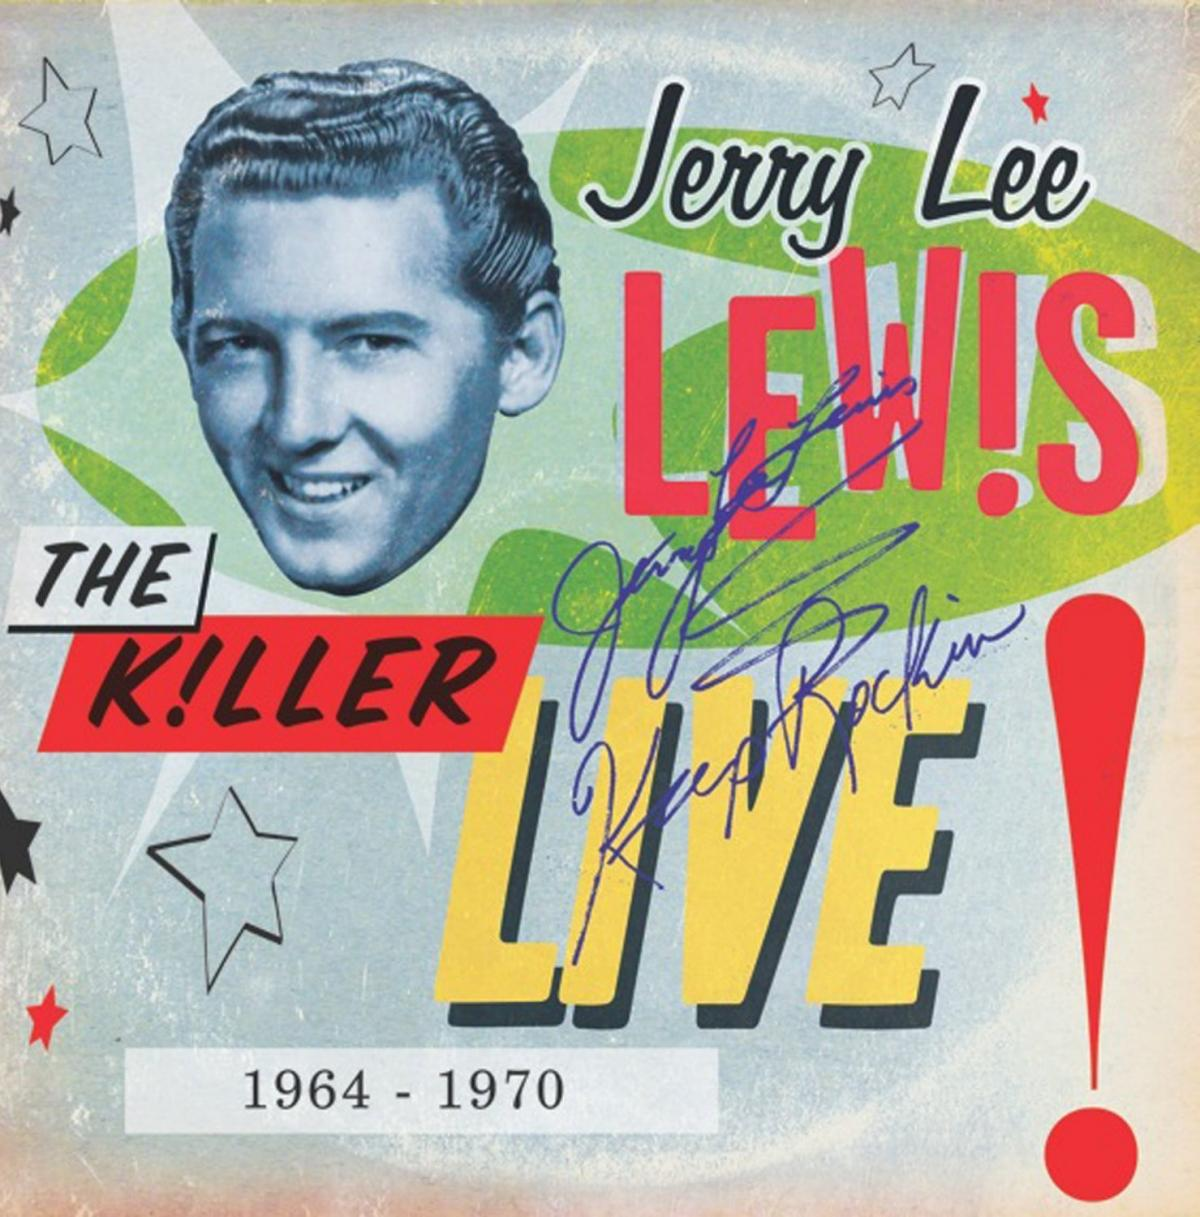 A new 3-CD box set of live performances by Jerry Lee Lewis combines four albums and includes 16 bonus tracks.